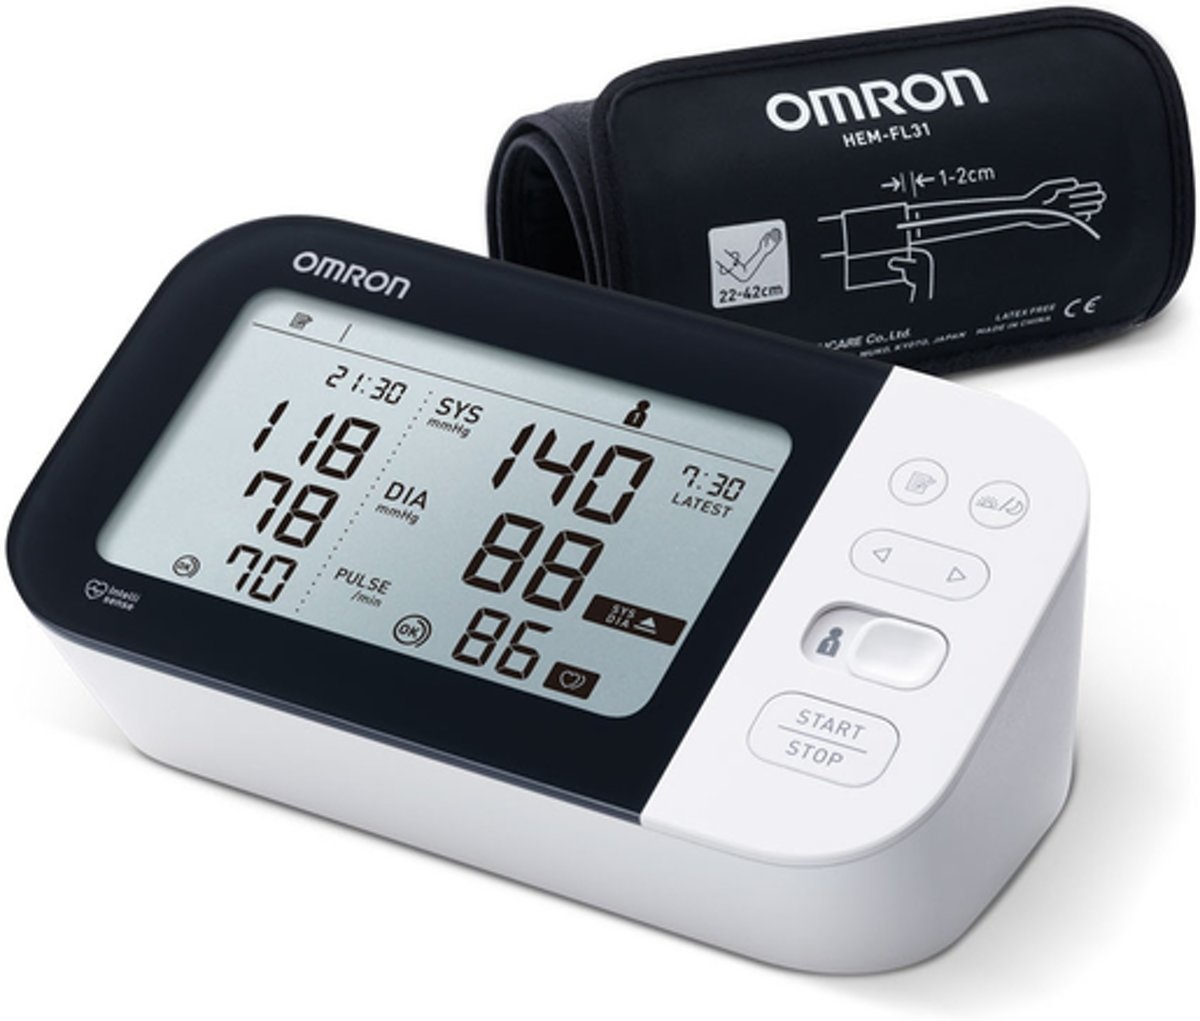 Omron M7 Intelli IT Blood Pressure Monitor with AFIB